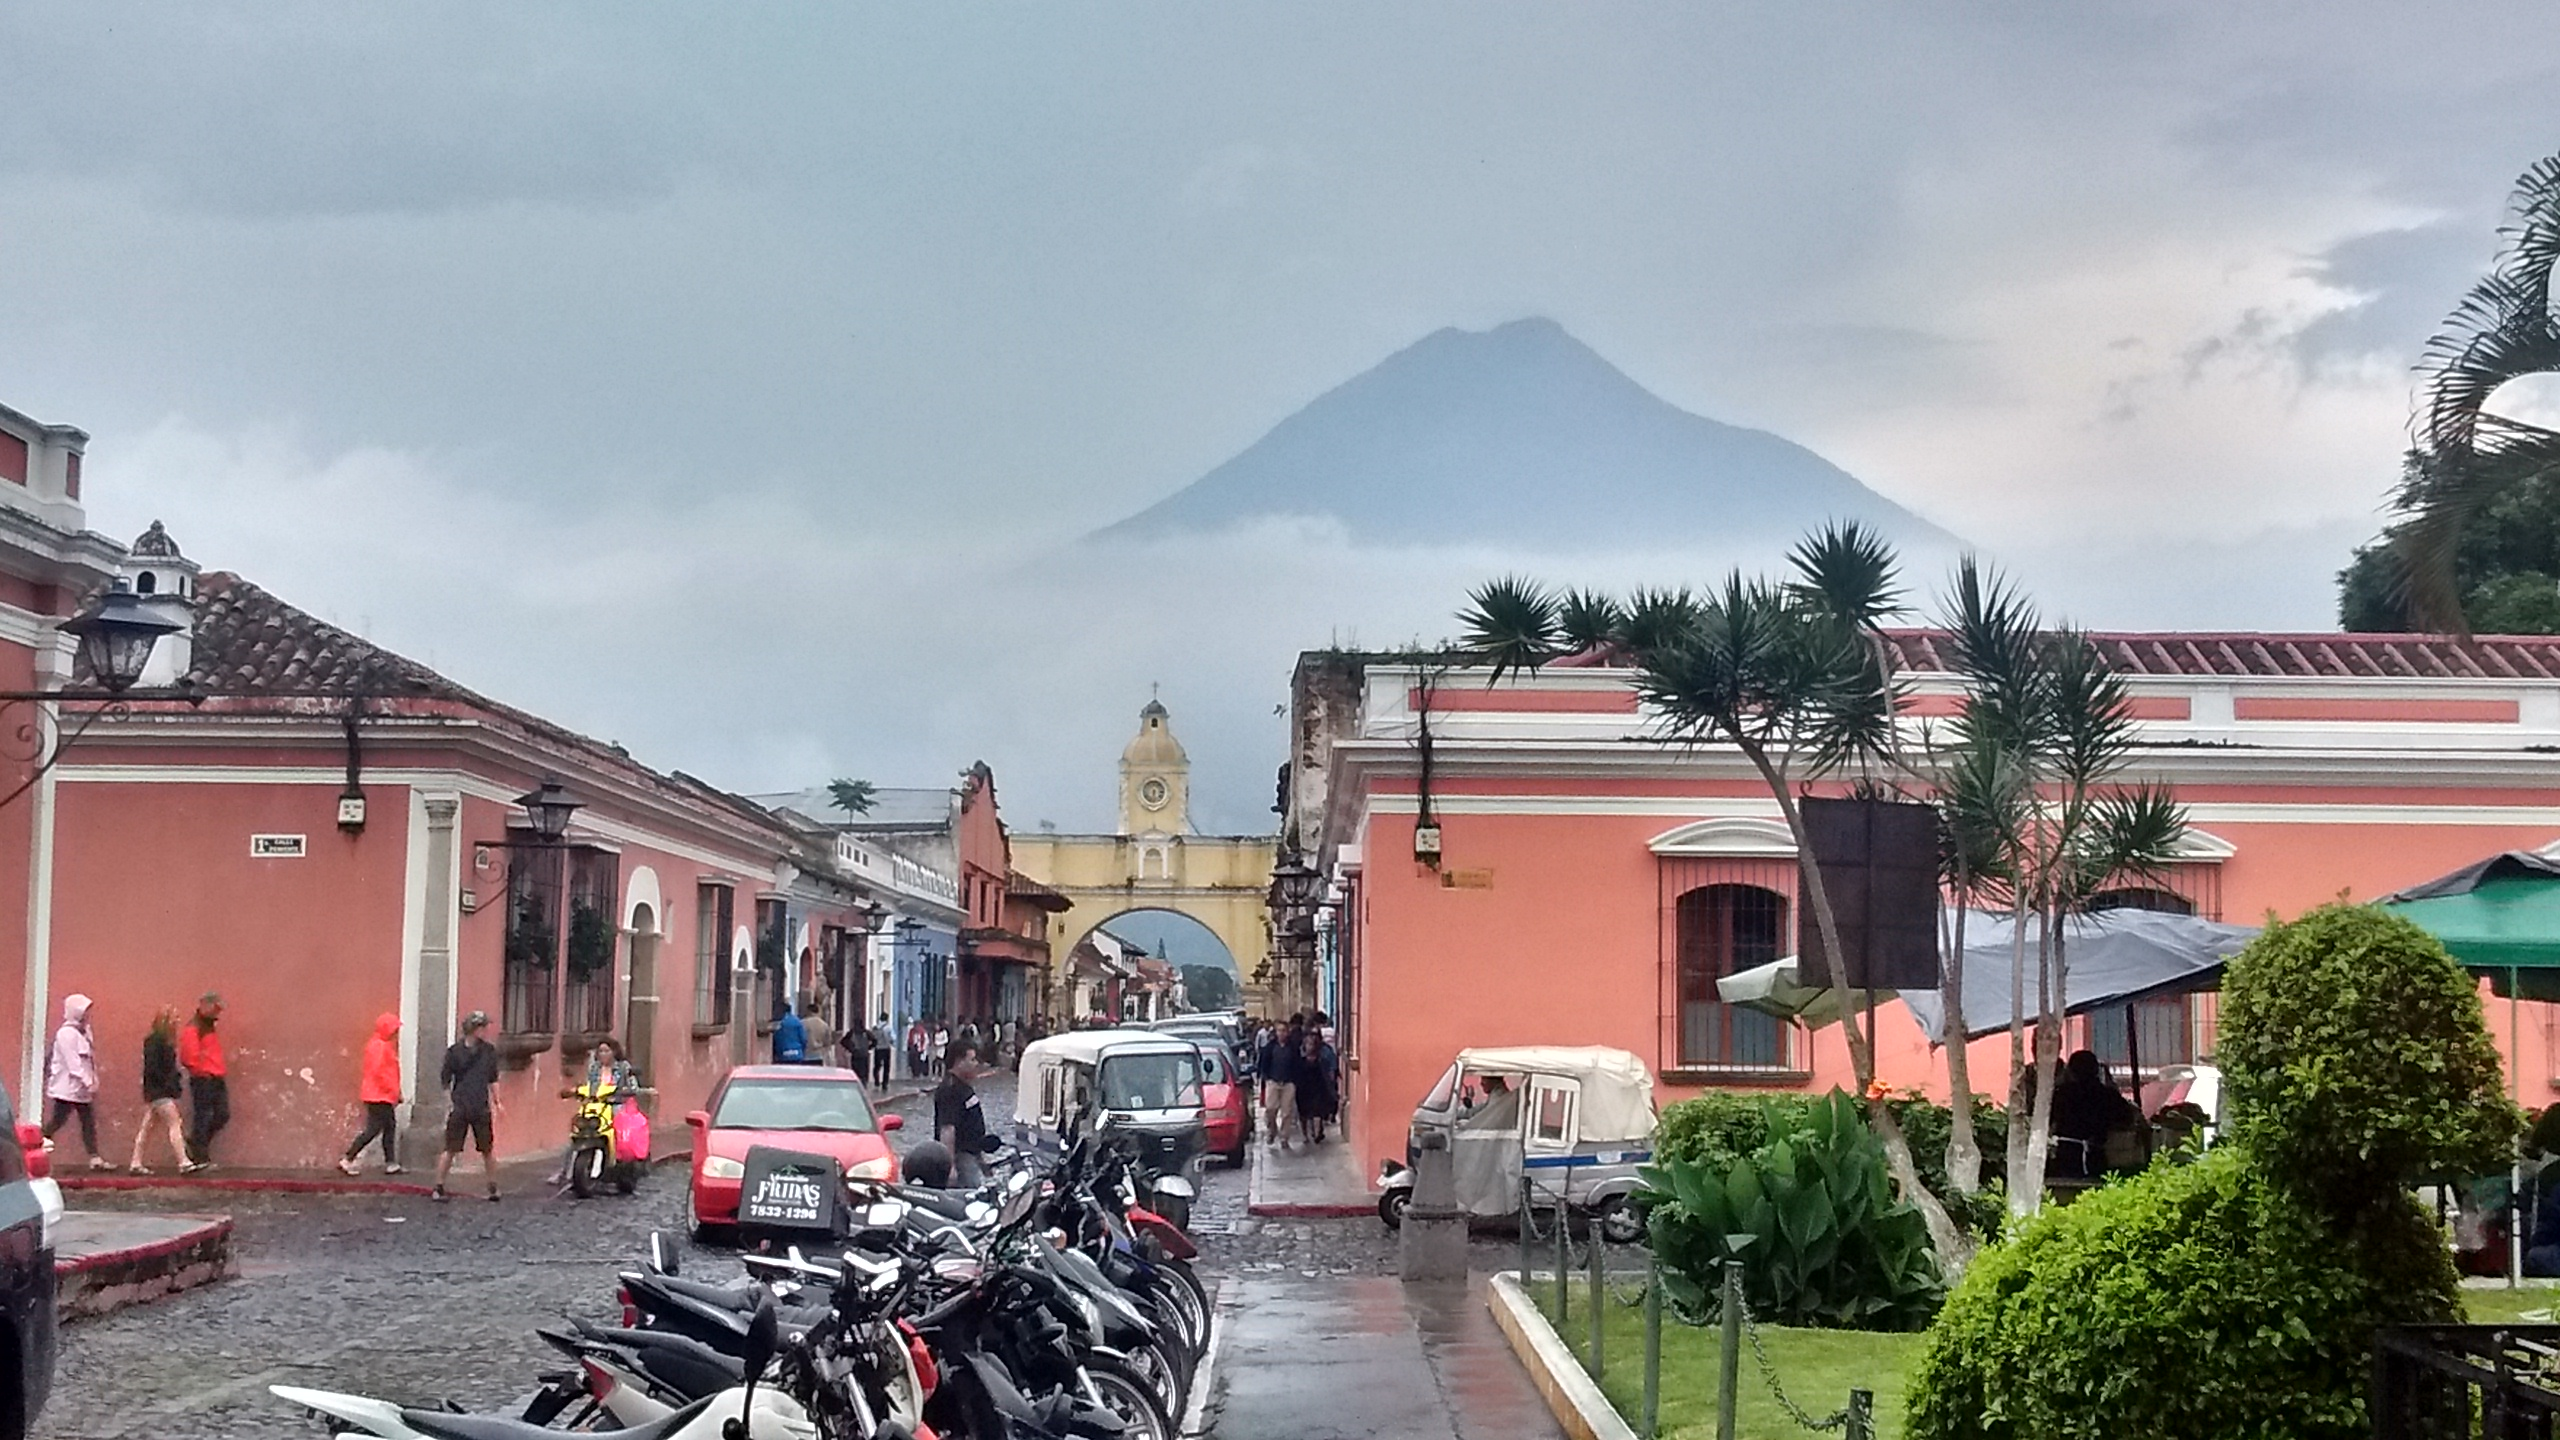 Antigua, Guatemala, where the team spent the last two nights of the trip.